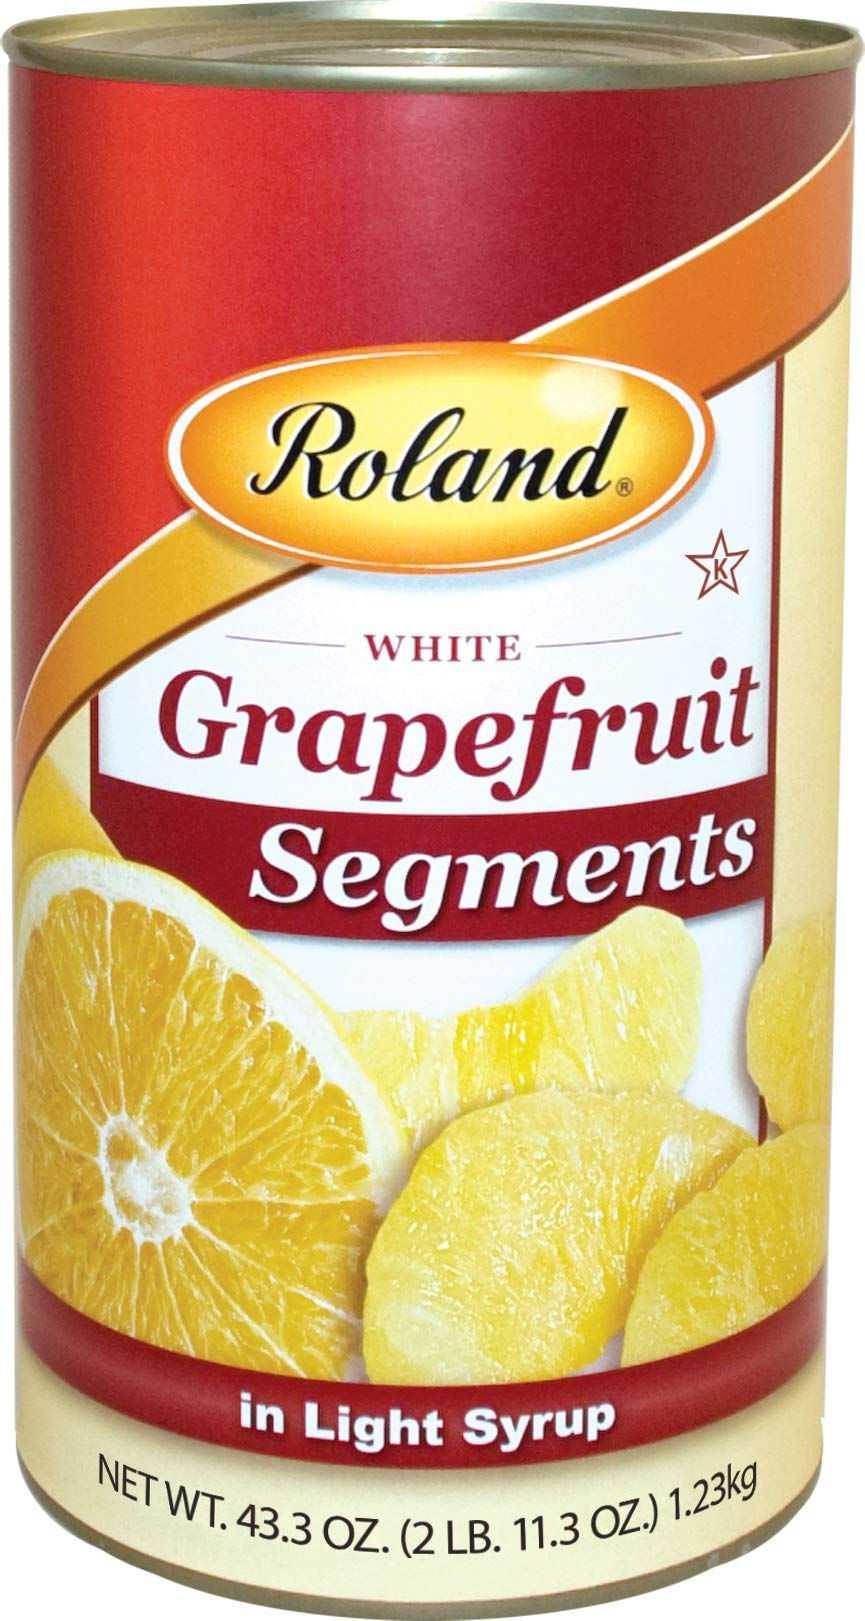 Roland Grapefruit, Segments in Light Syrup, 43.3 Ounce (Pack of 4)